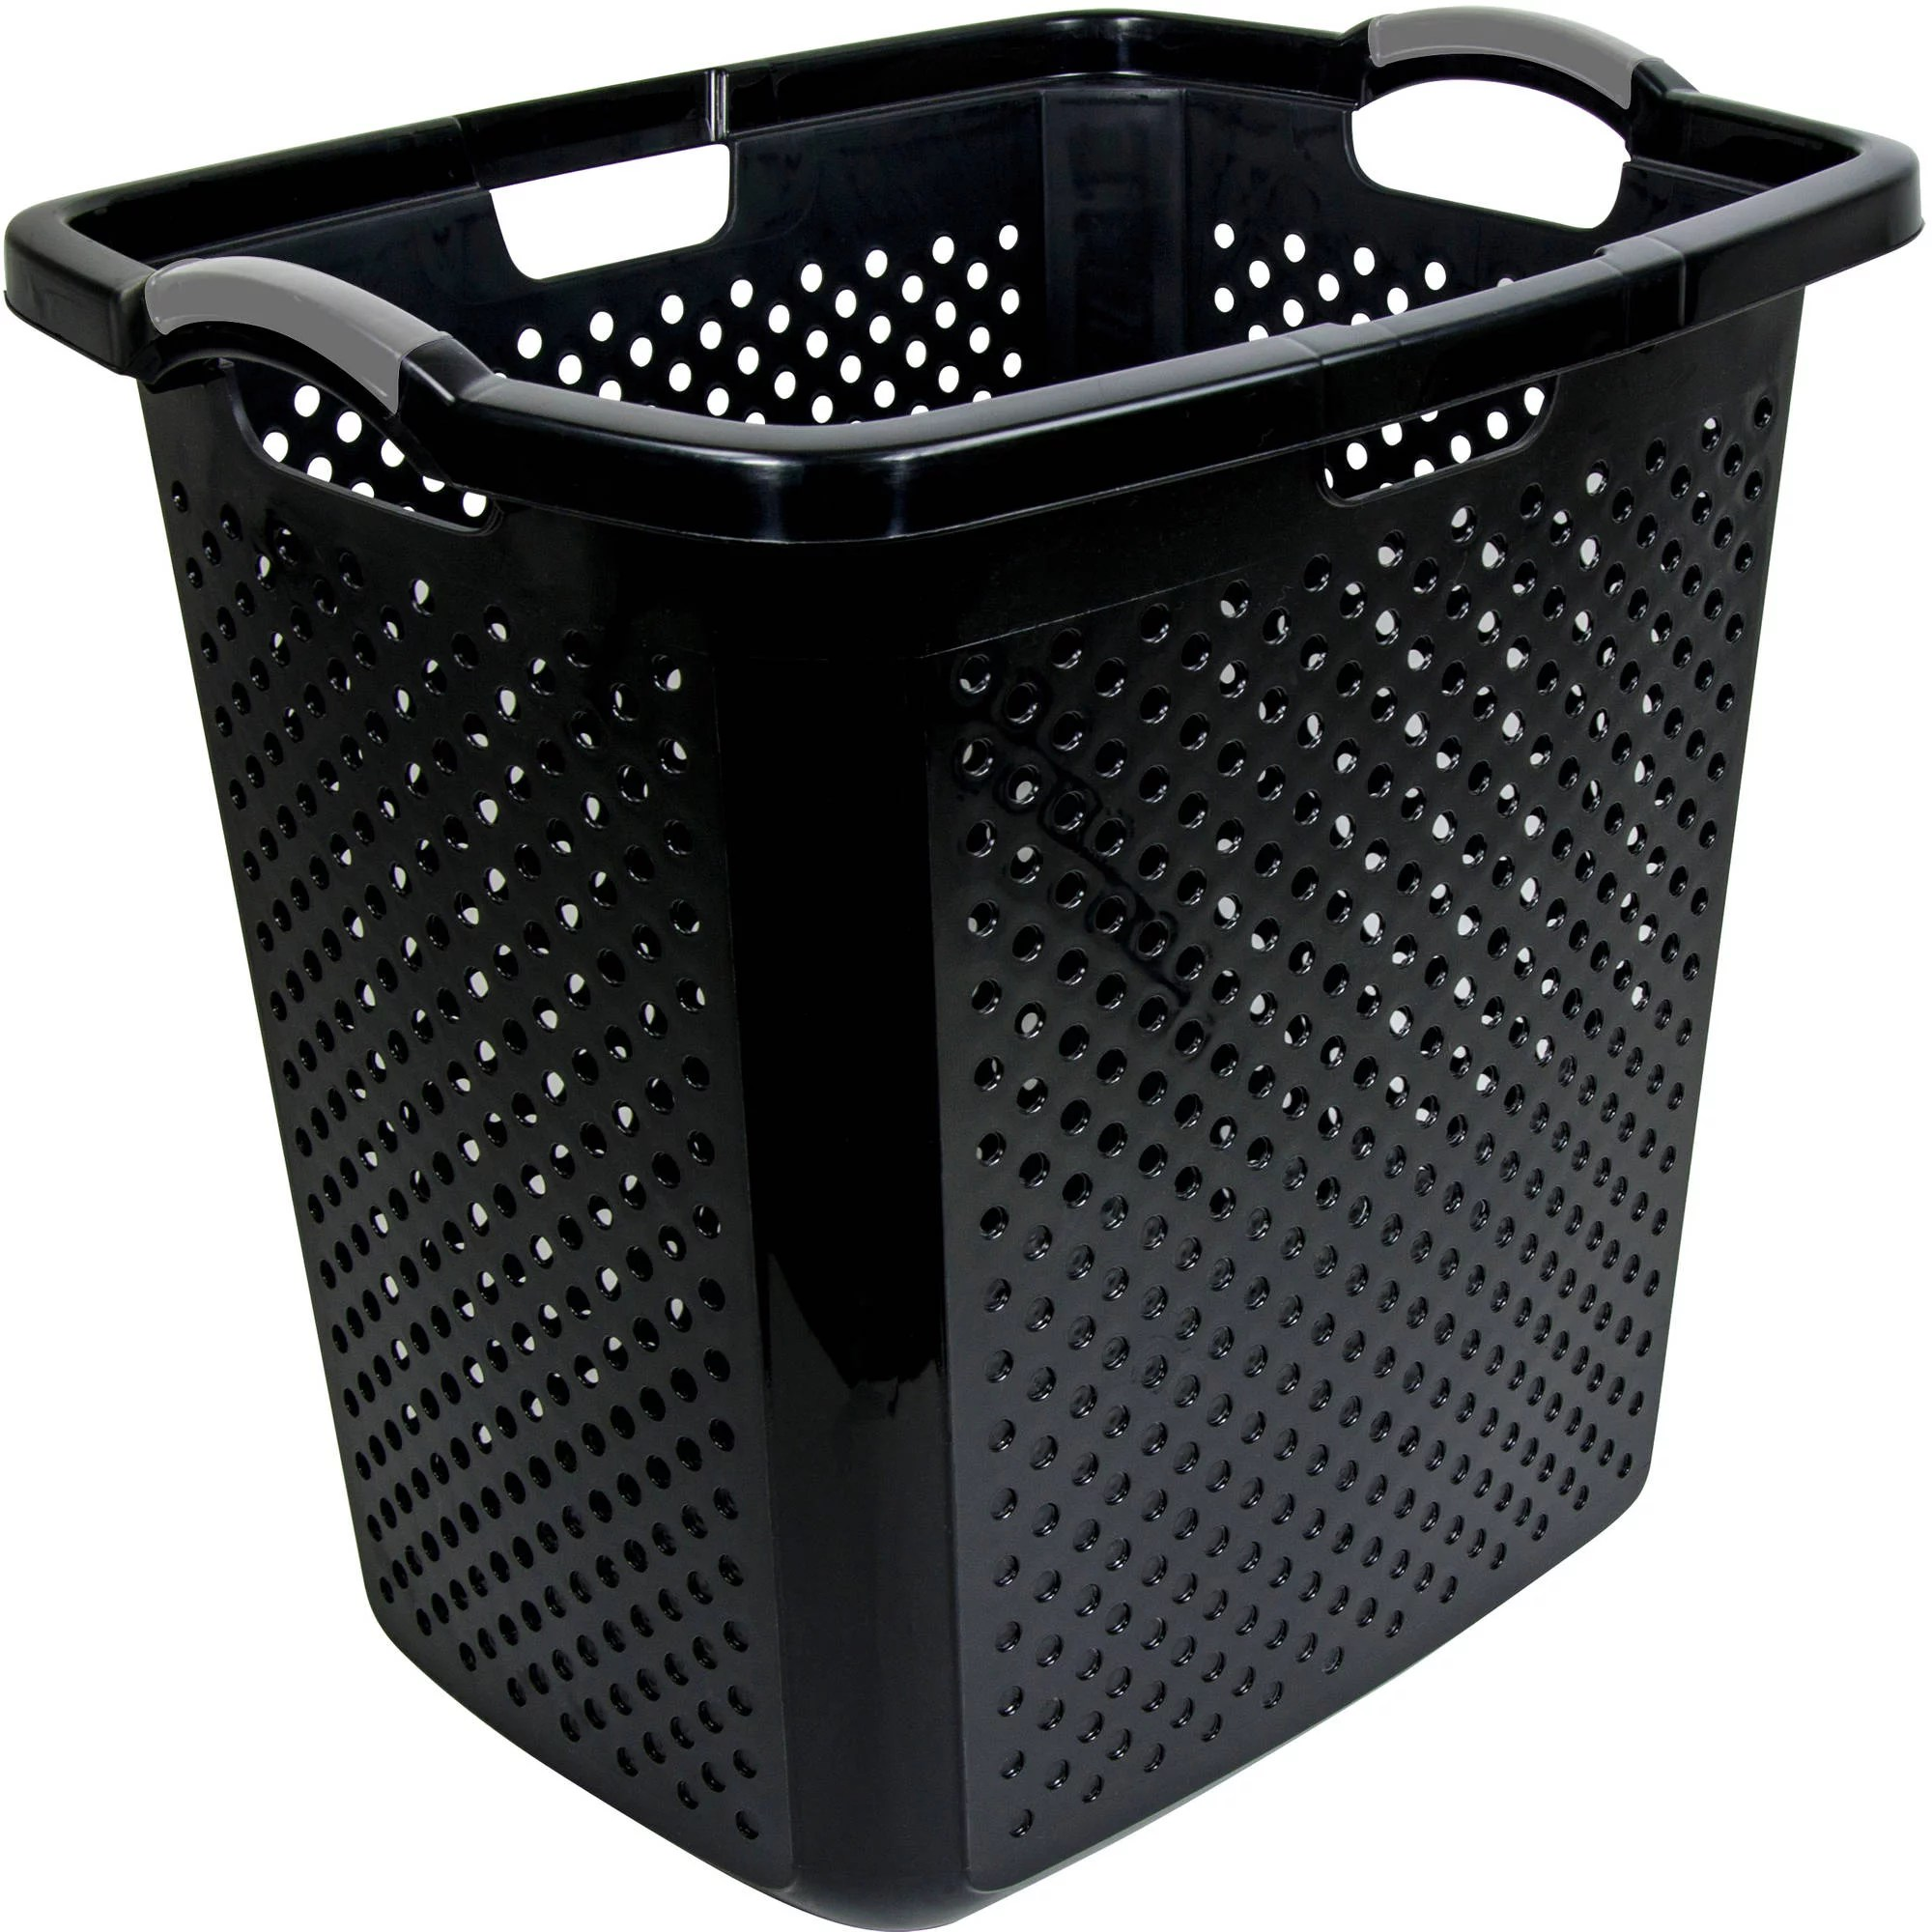 Clothes Baskets Mainstays 1 Bushel Laundry Basket White Available In